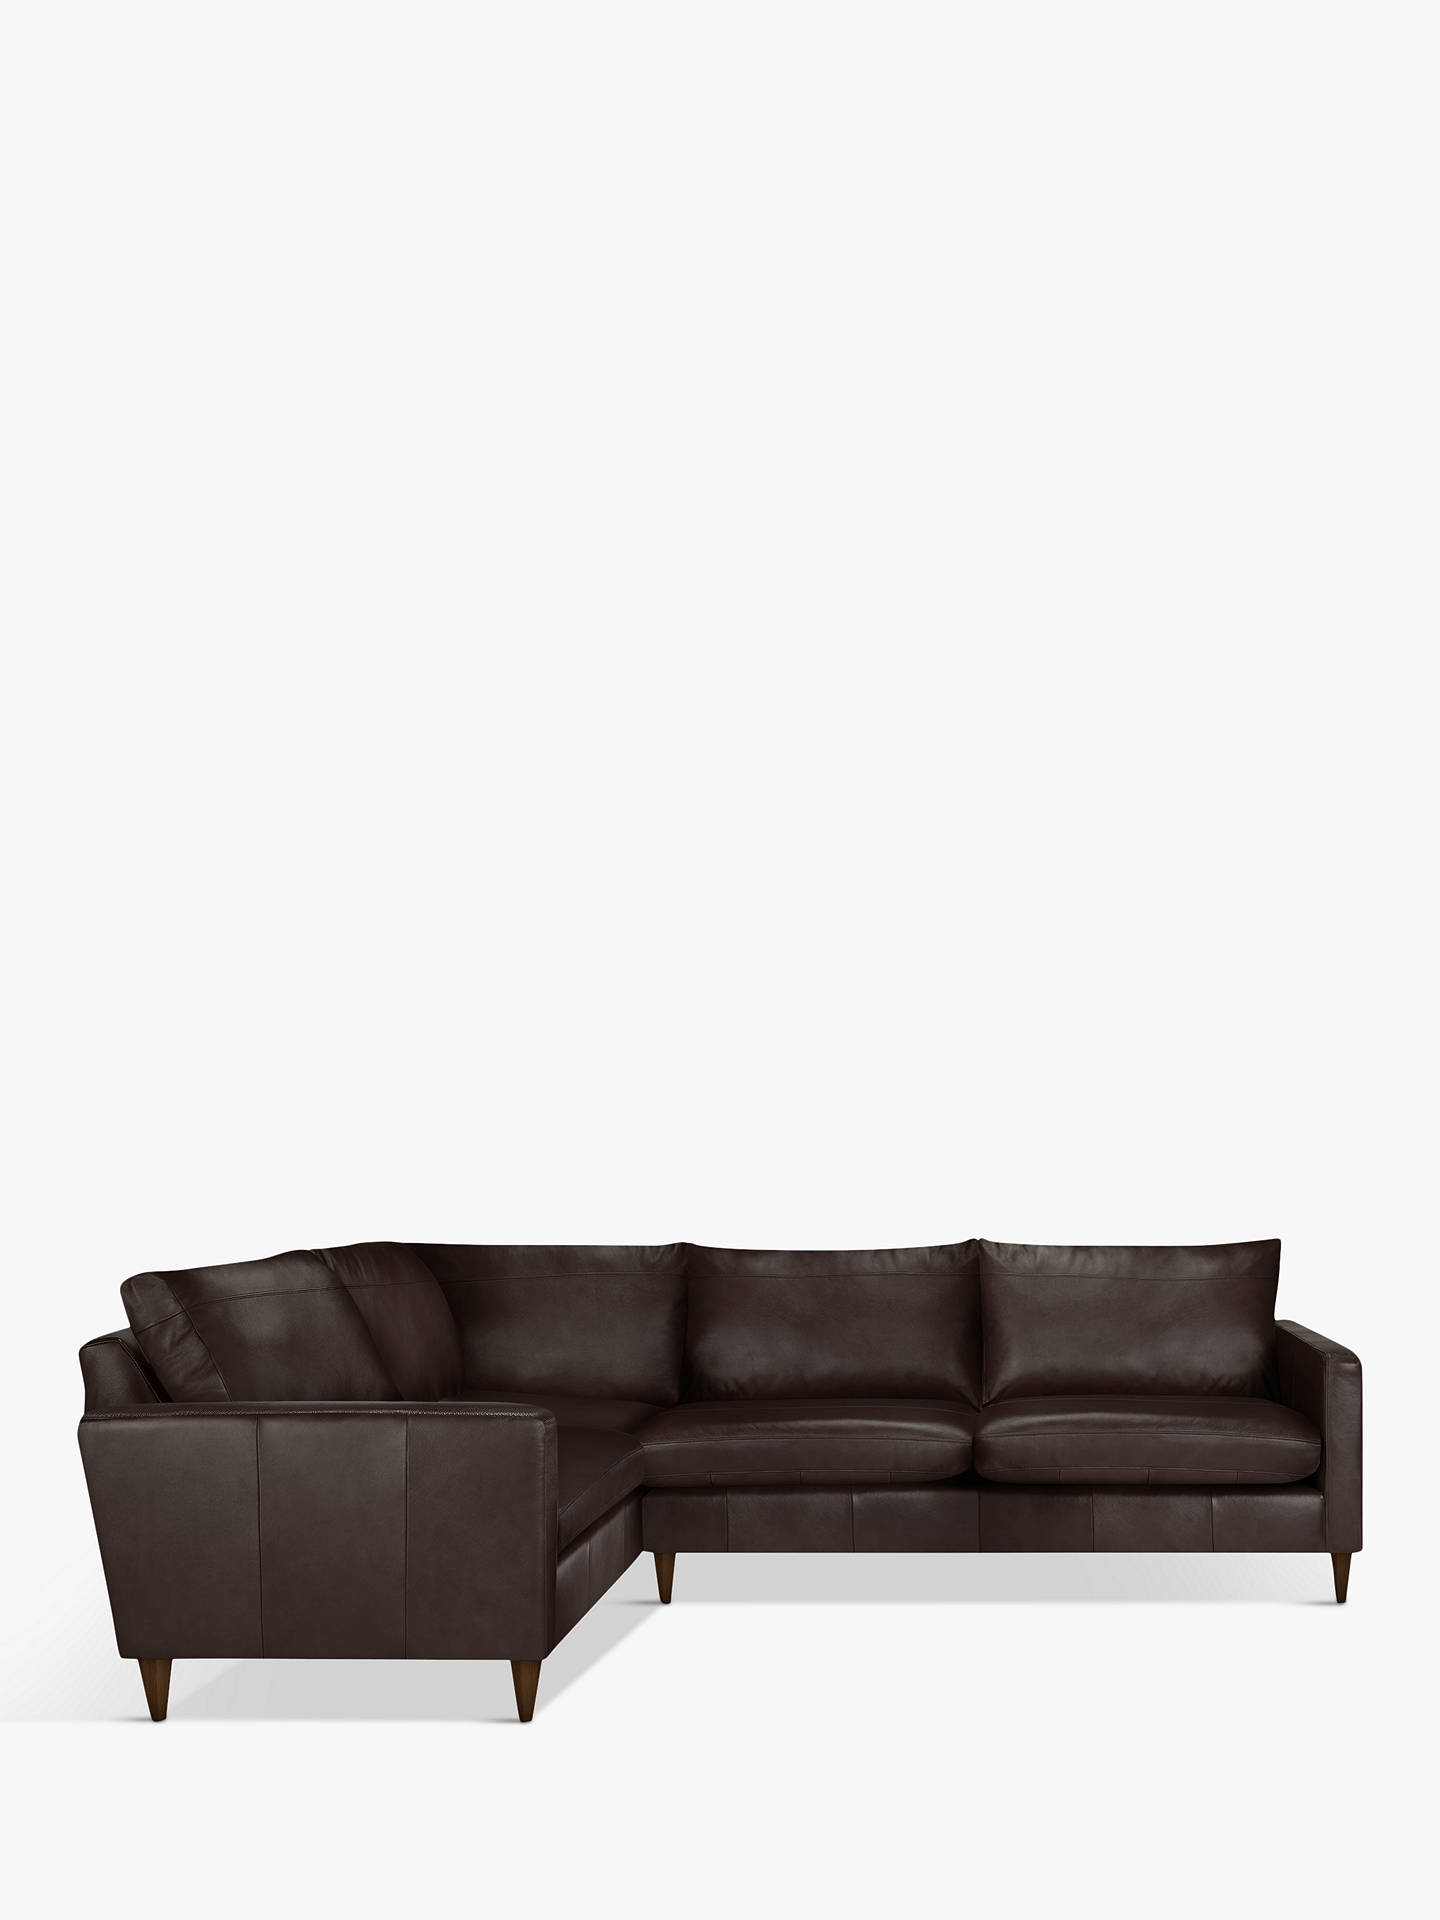 BuyJohn Lewis & Partners Bailey Leather RHF Corner End Sofa, Dark Leg, Demetra Charcoal Online at johnlewis.com